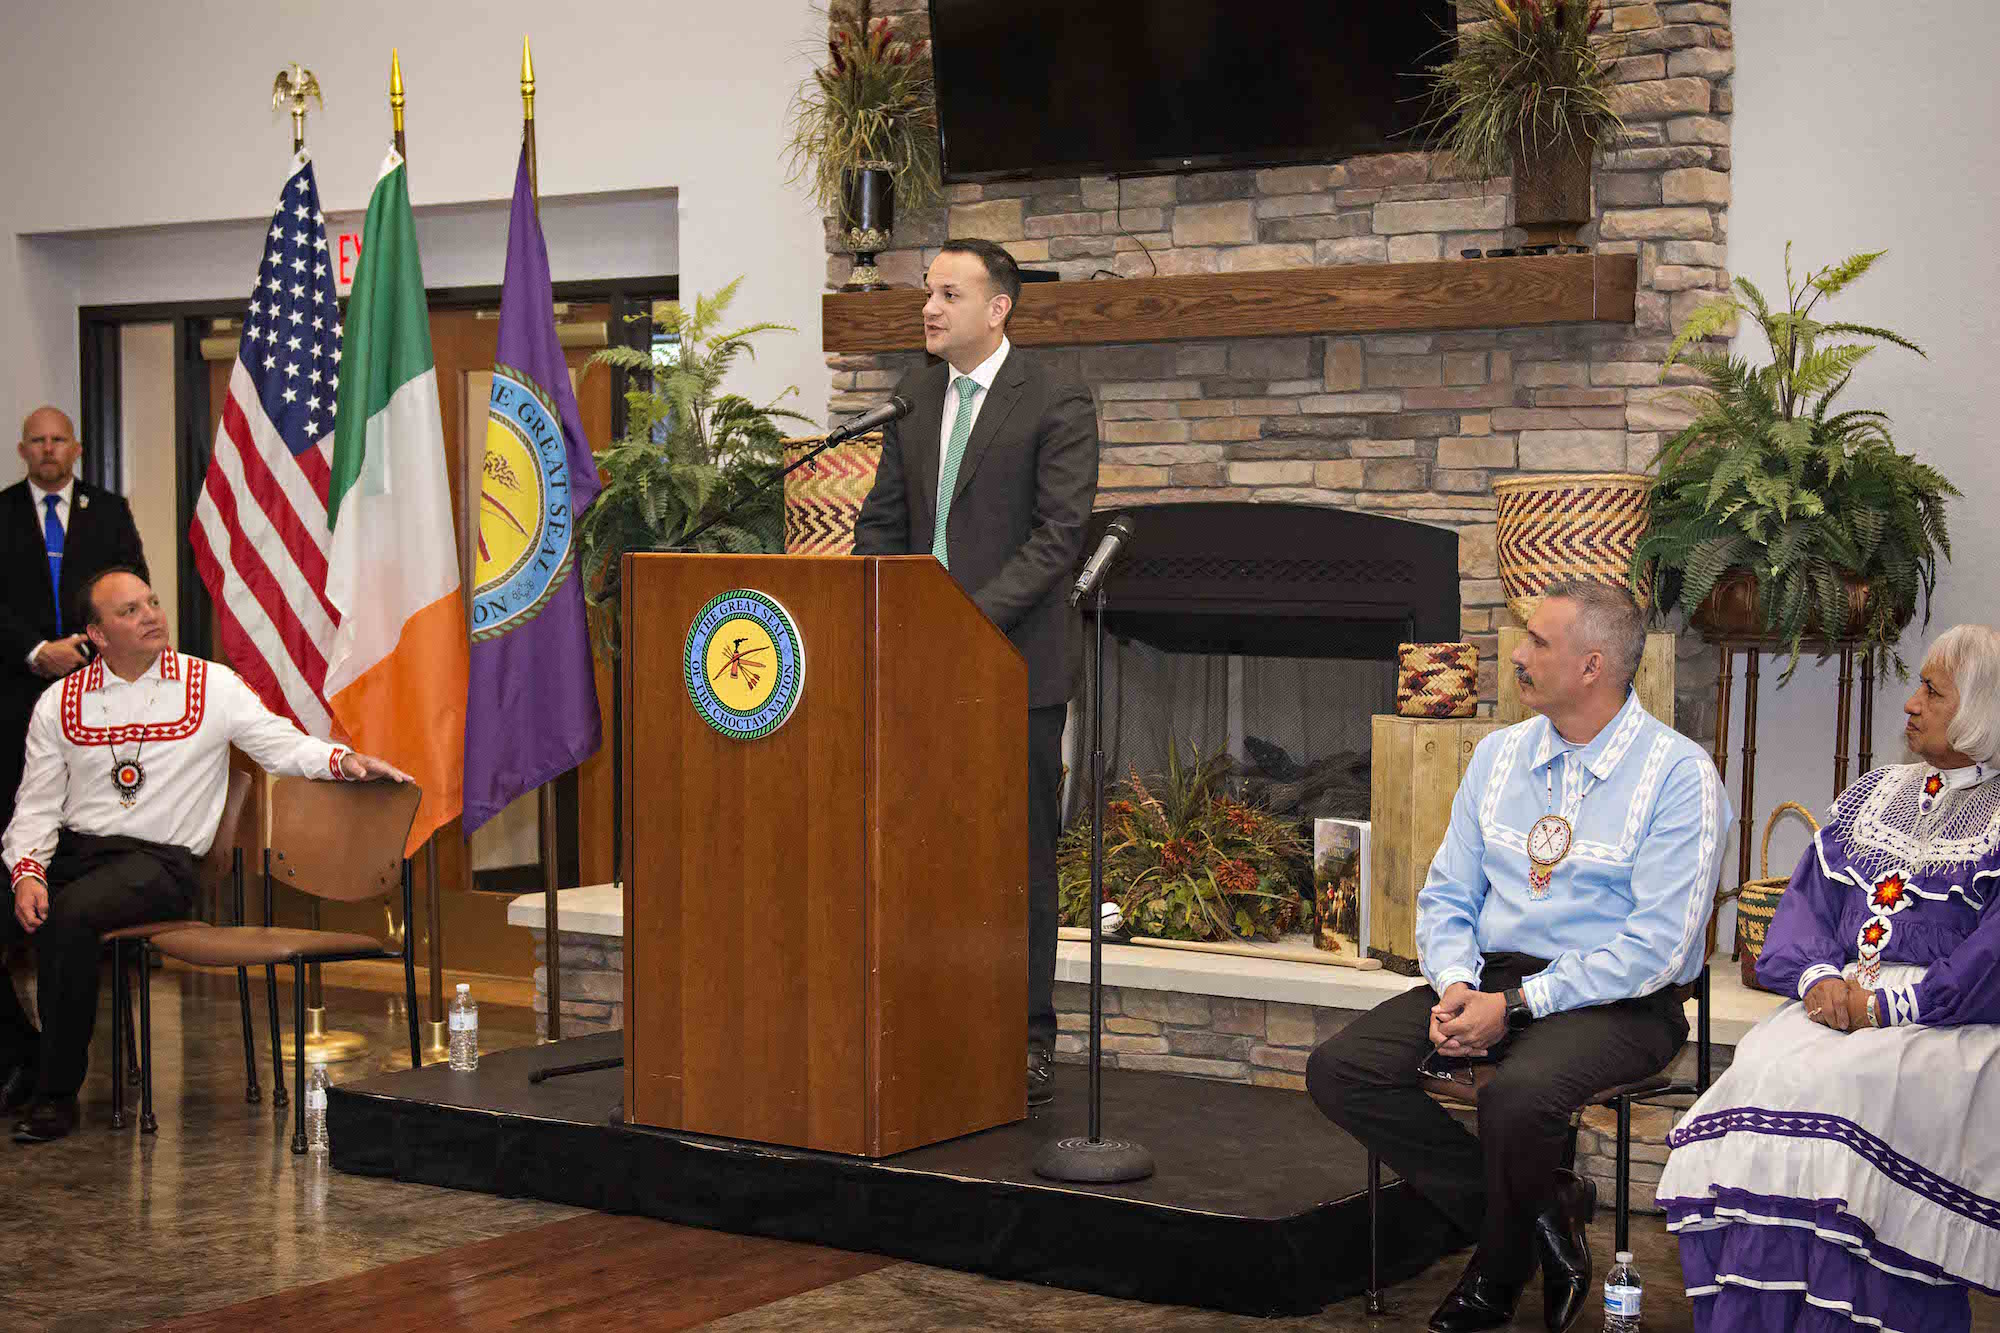 Irish Prime Minister Visits Choctaw Nation to Thank Them for Famine Donation Made 172 Ago